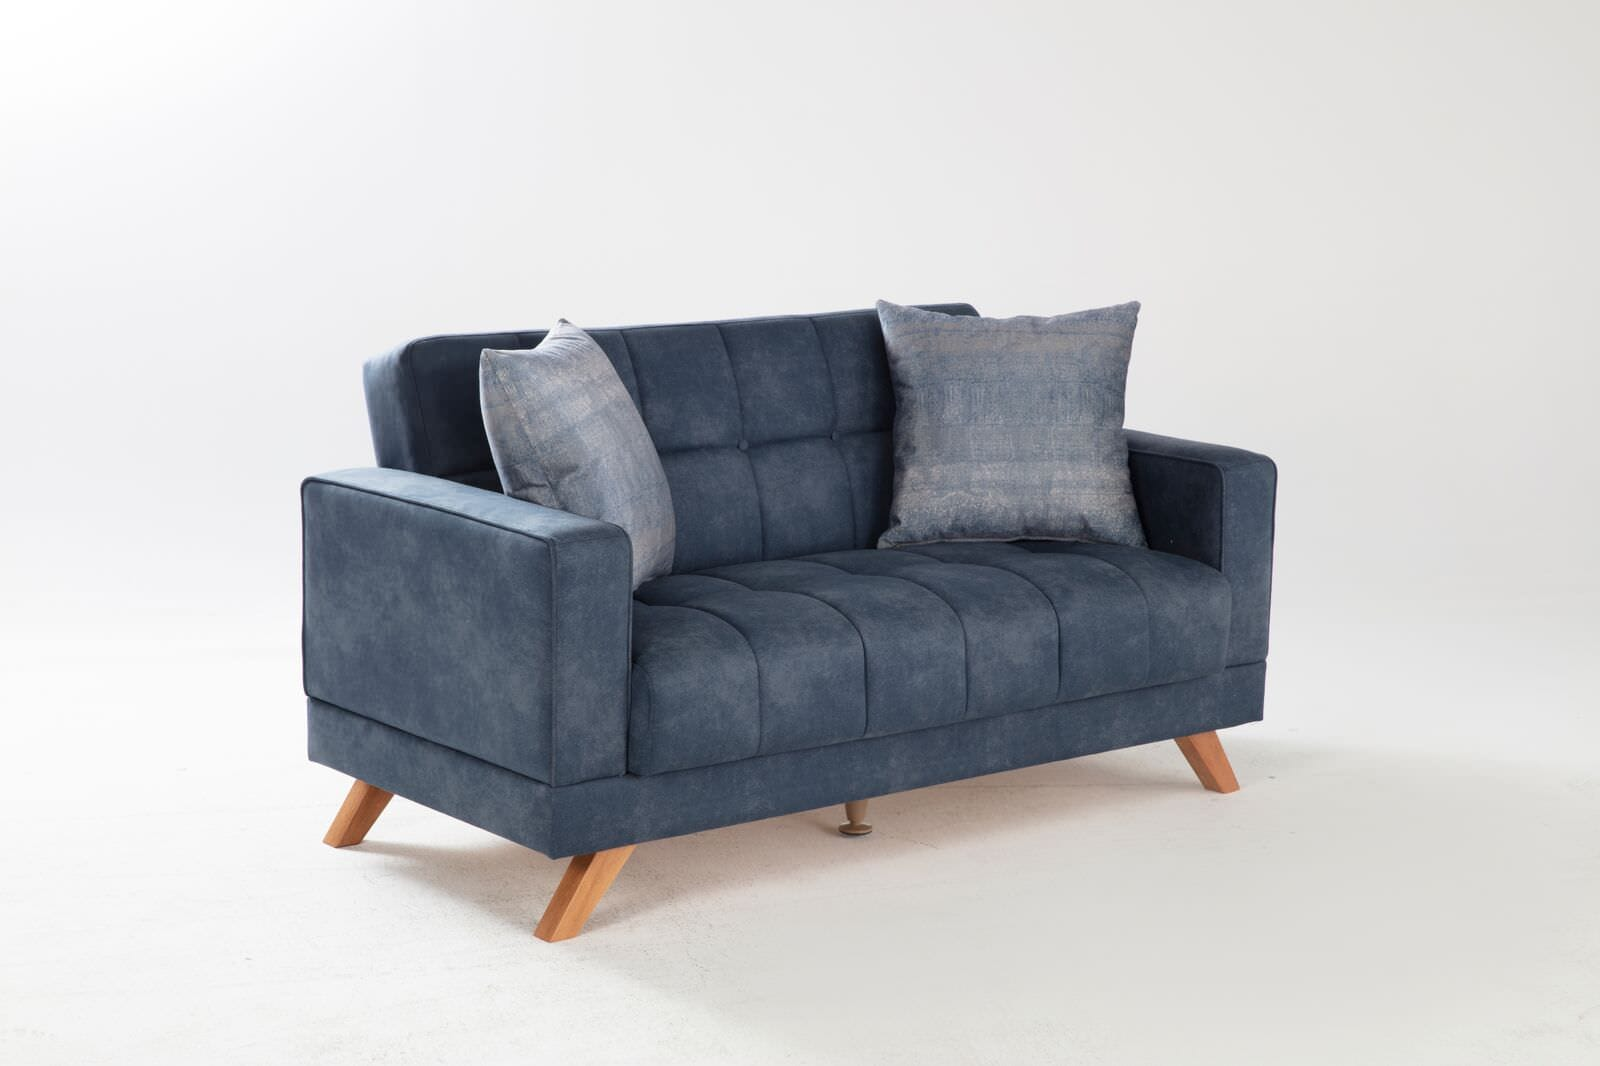 Excellent Montana Yakut Navy Loveseat By Istikbal Furniture Evergreenethics Interior Chair Design Evergreenethicsorg